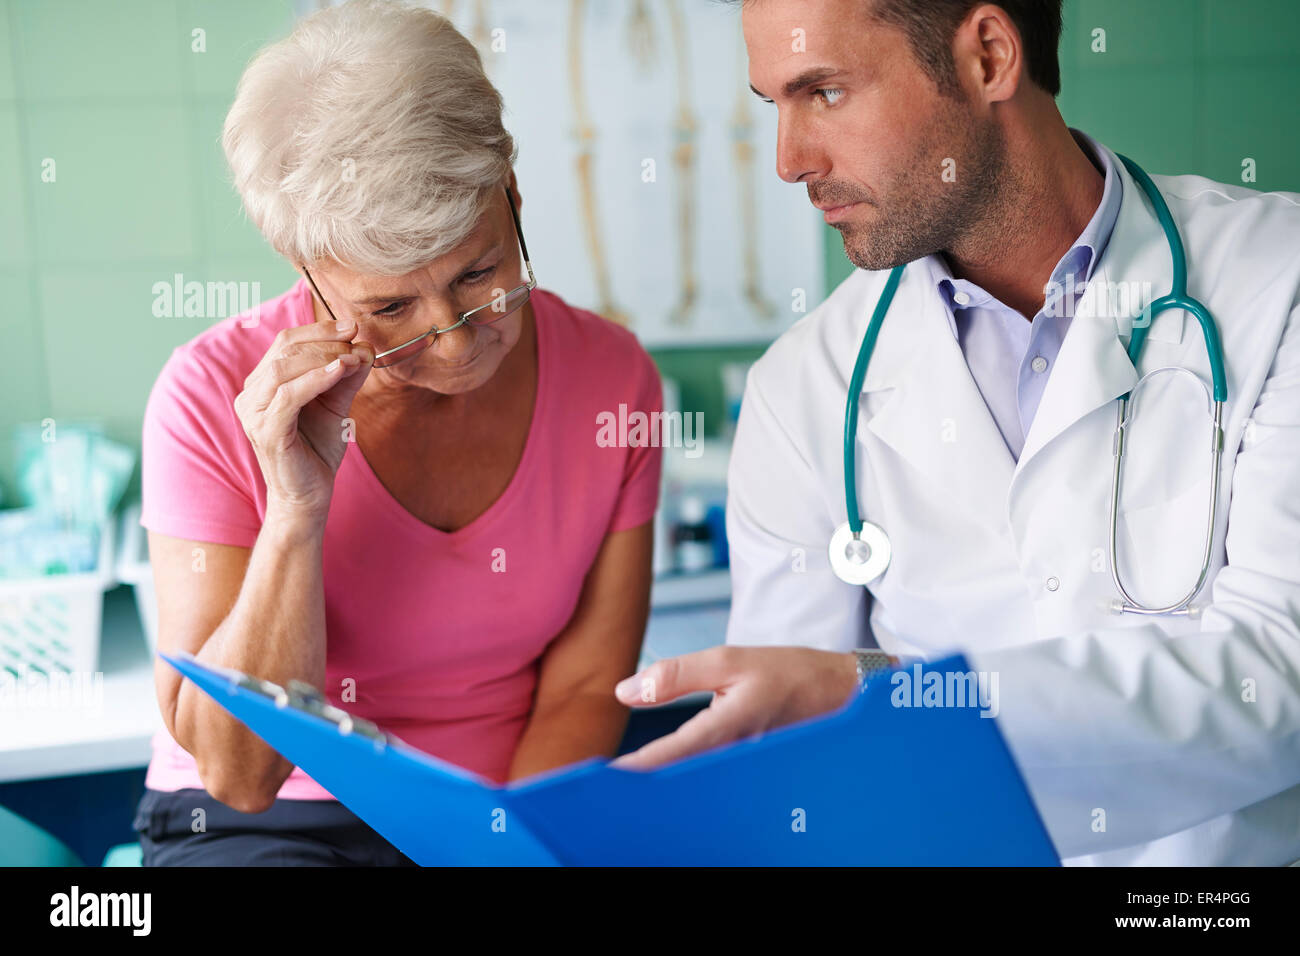 Look for this medical test. You have to take care of yourself. Debica, Poland - Stock Image